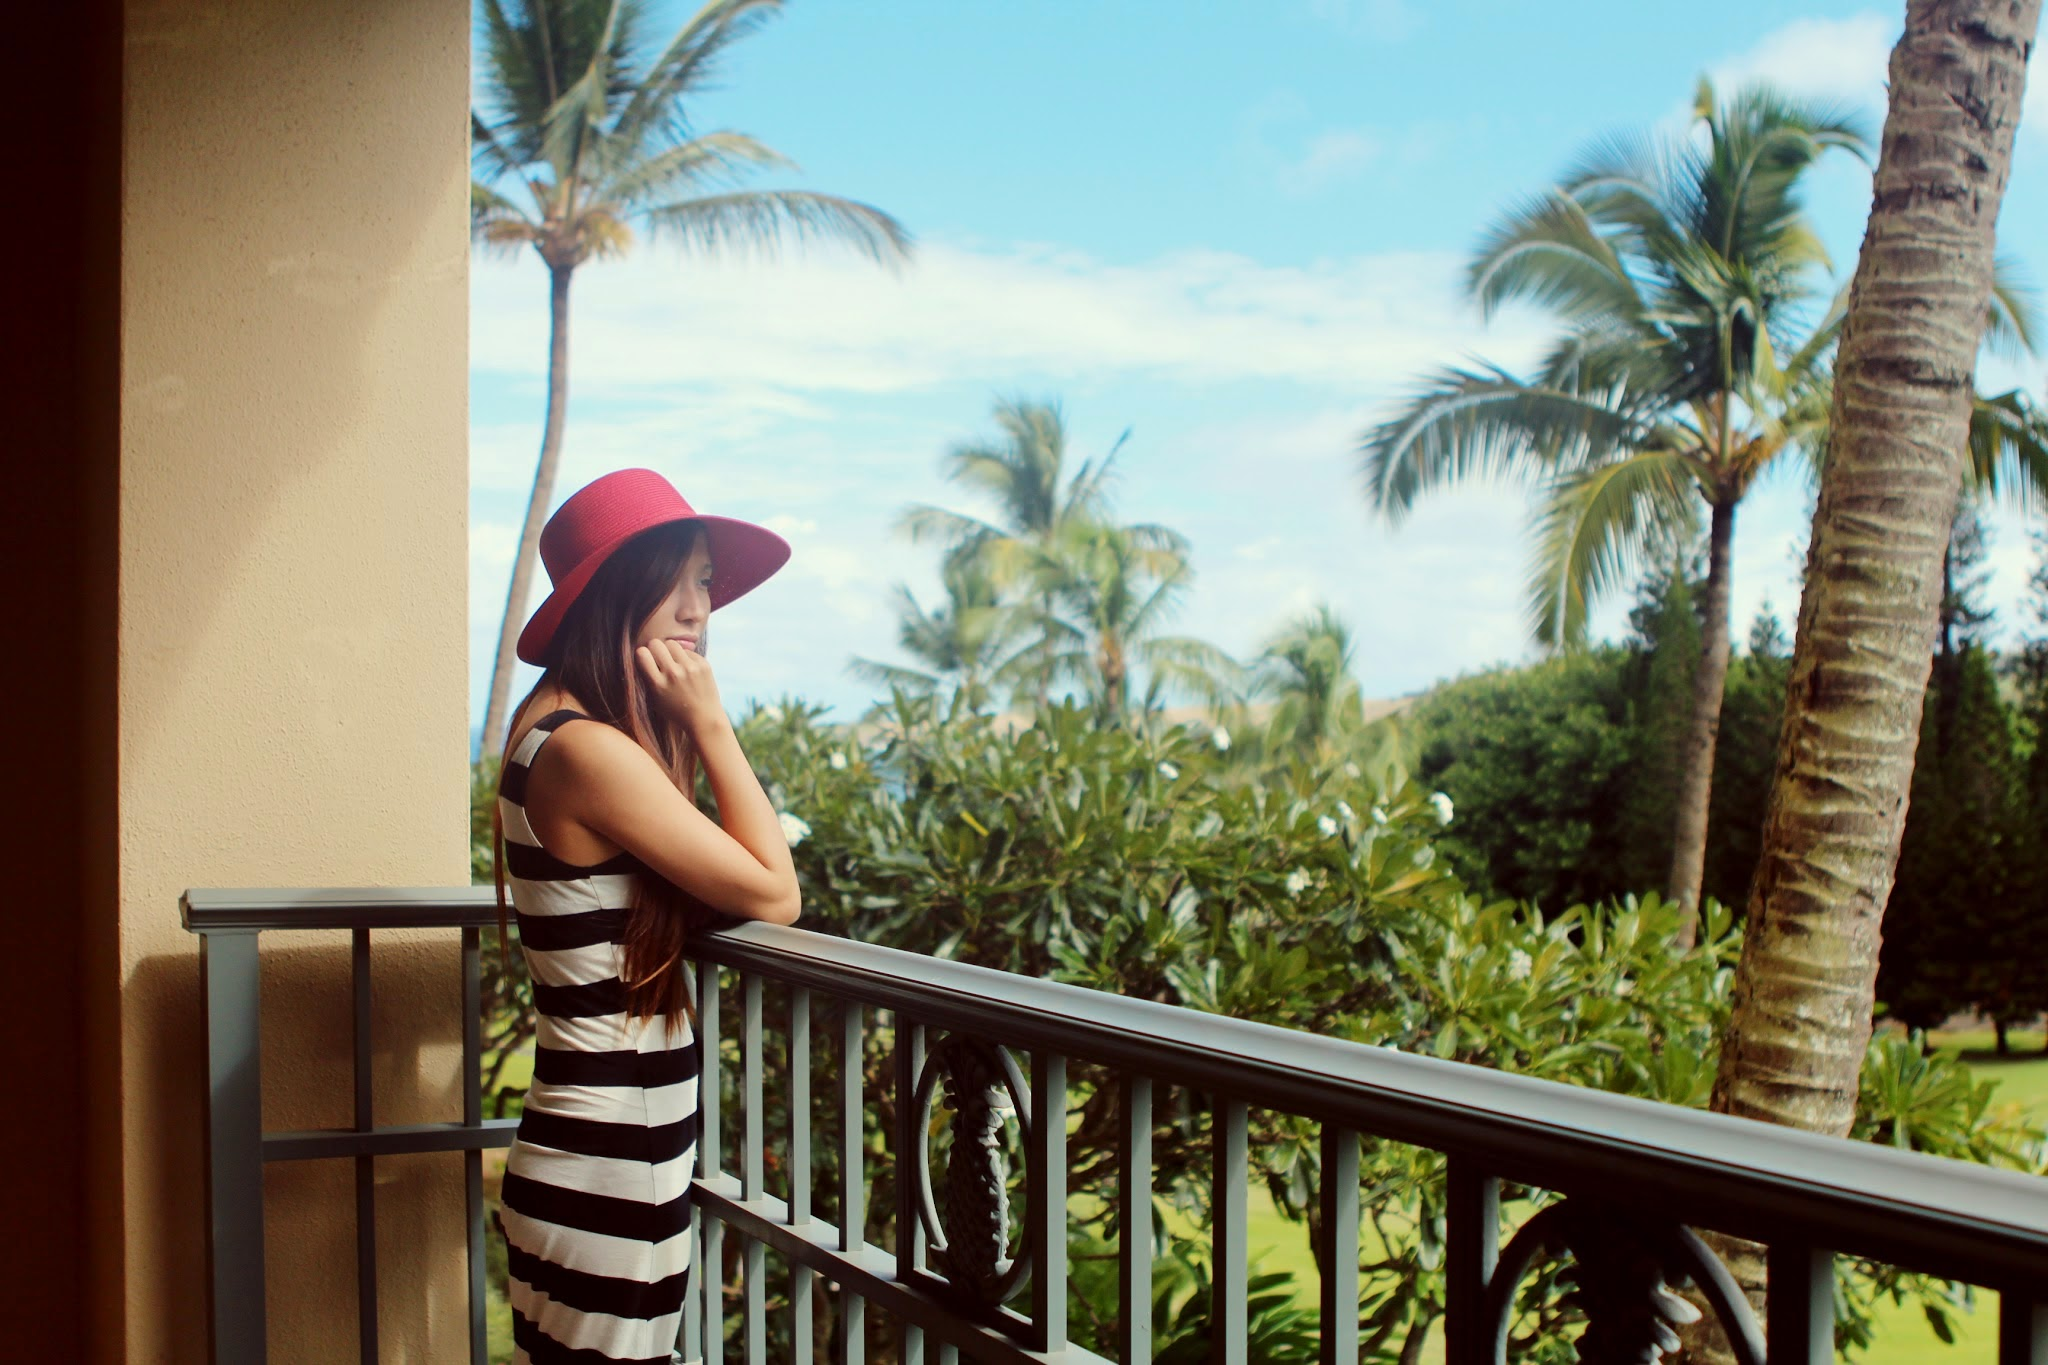 OOTD Ritz Carlton Maui Hawaii